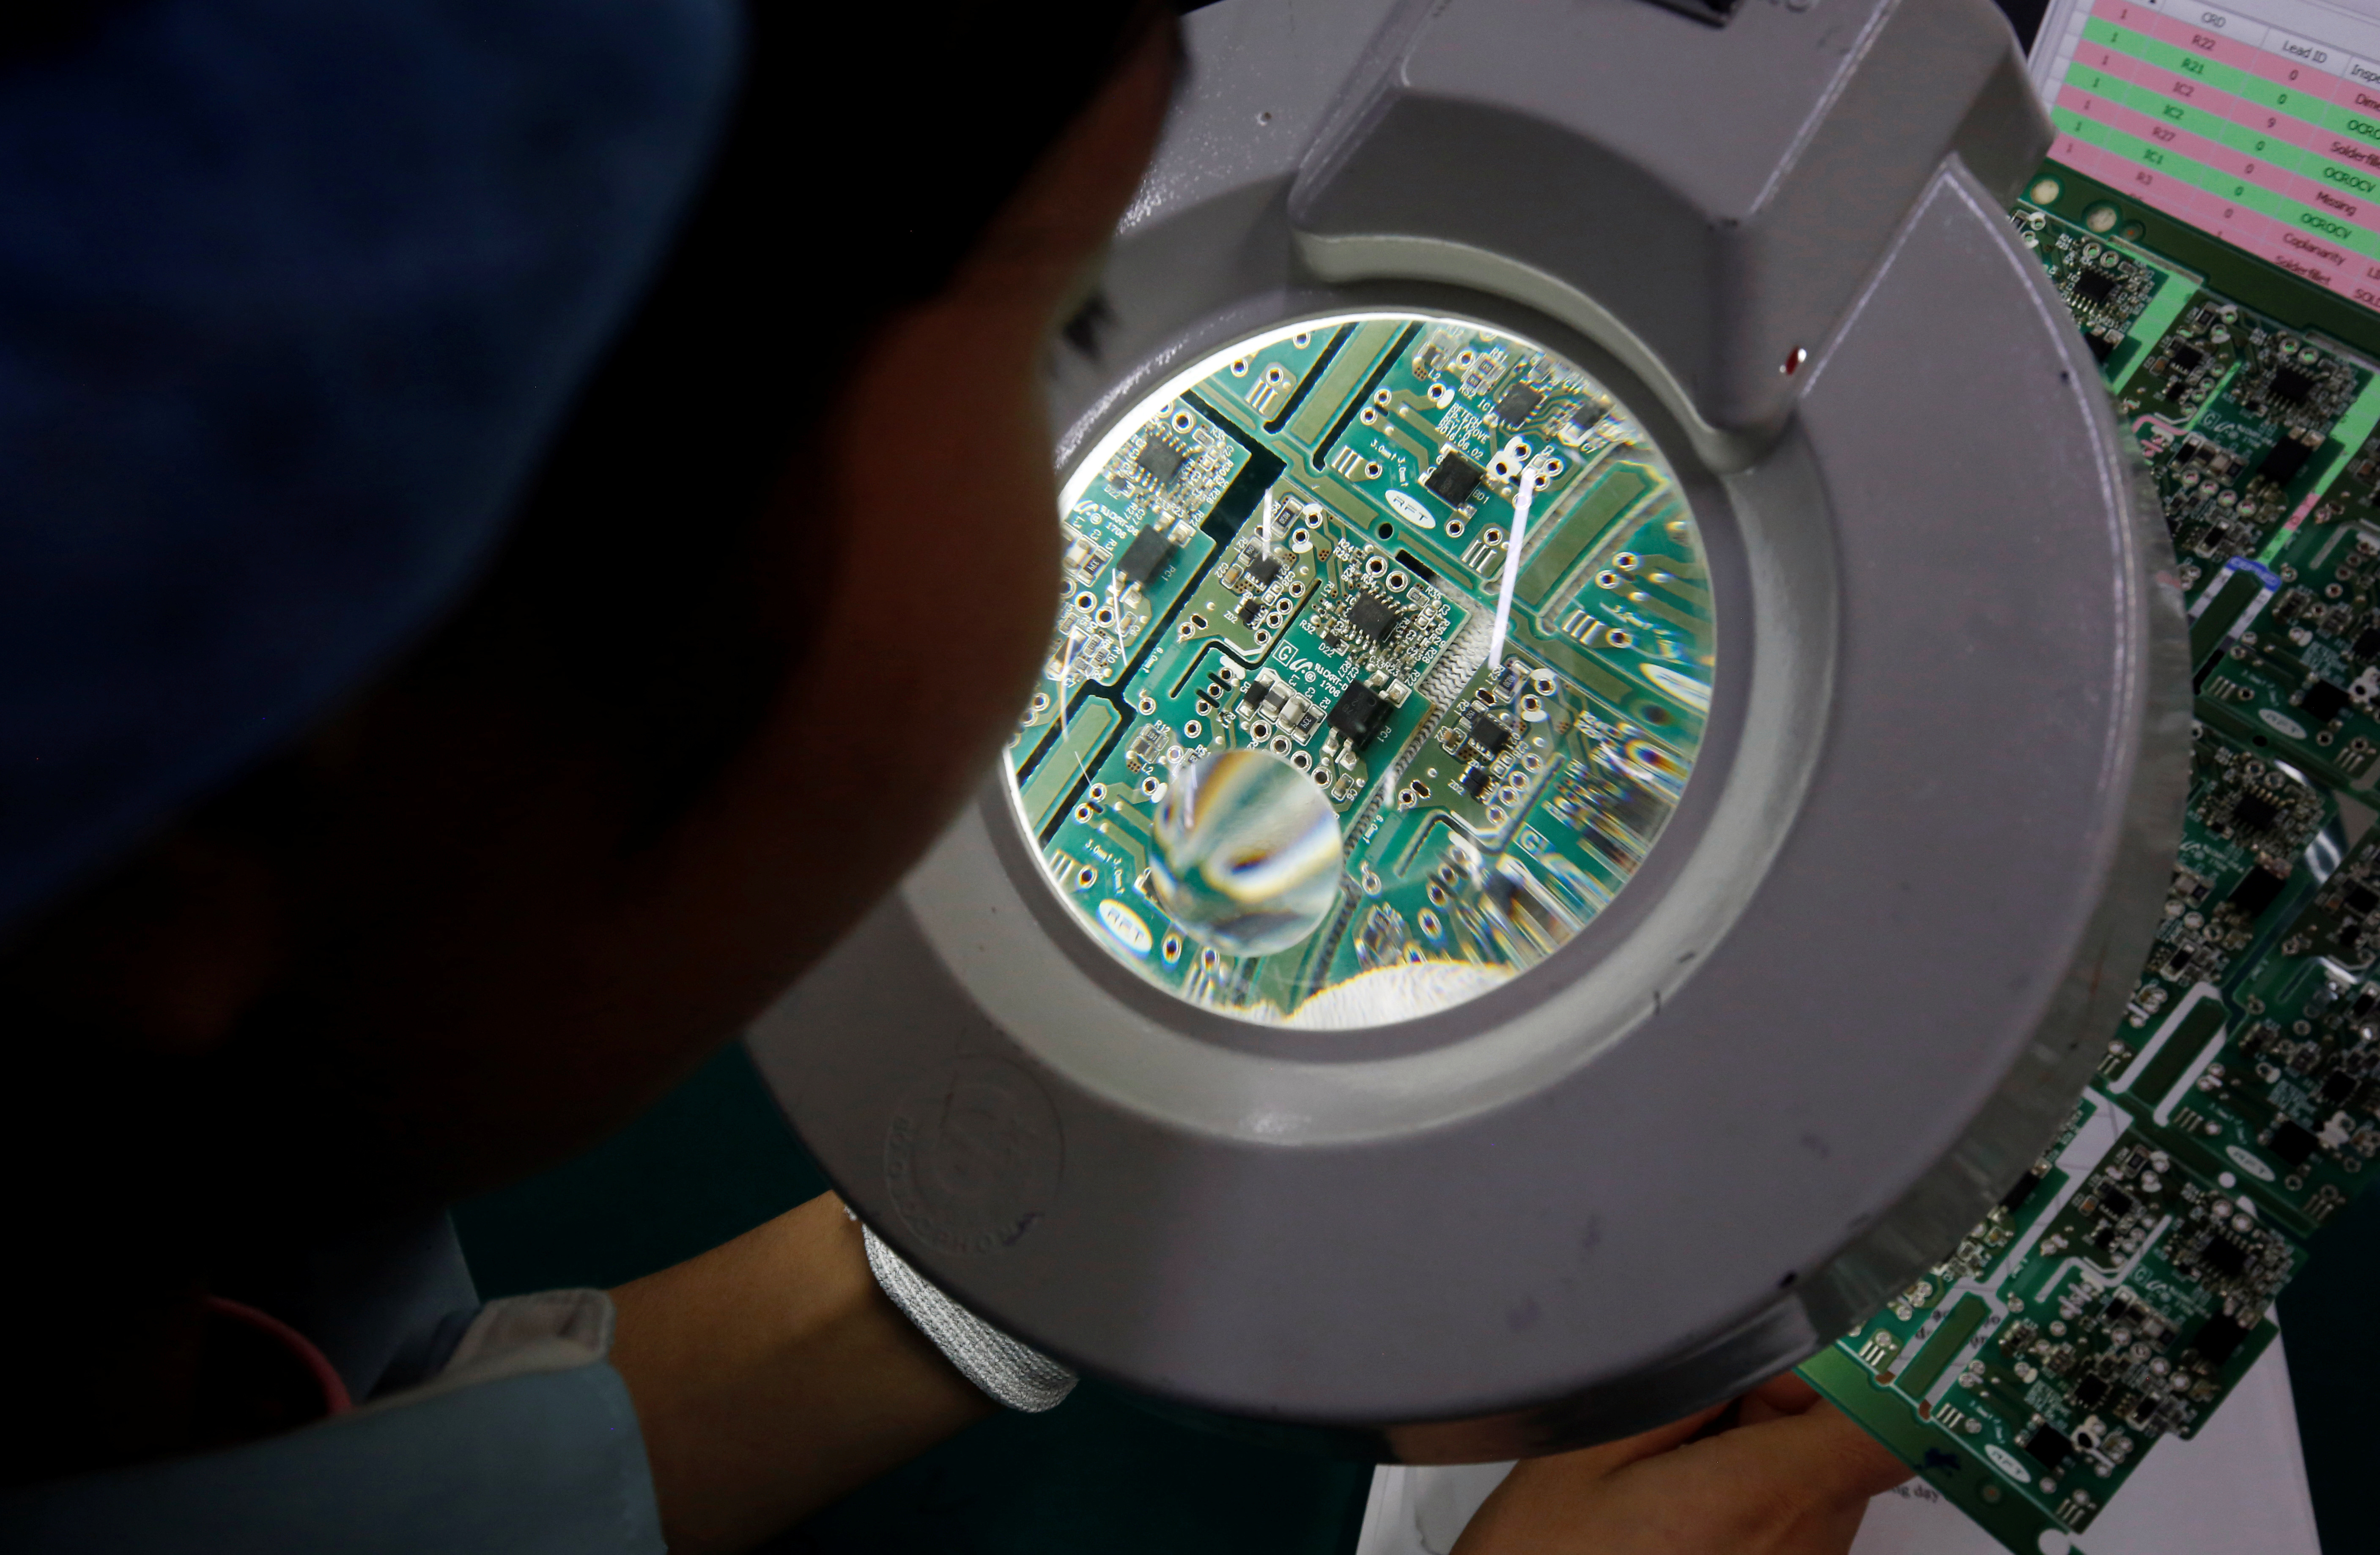 A woman looks through a magnifying glass to check errors of a printer circuit board at Manutronics Factory in Bac Ninh province, Vietnam May 30, 2018. REUTERS/Kham - RC1A001B9710